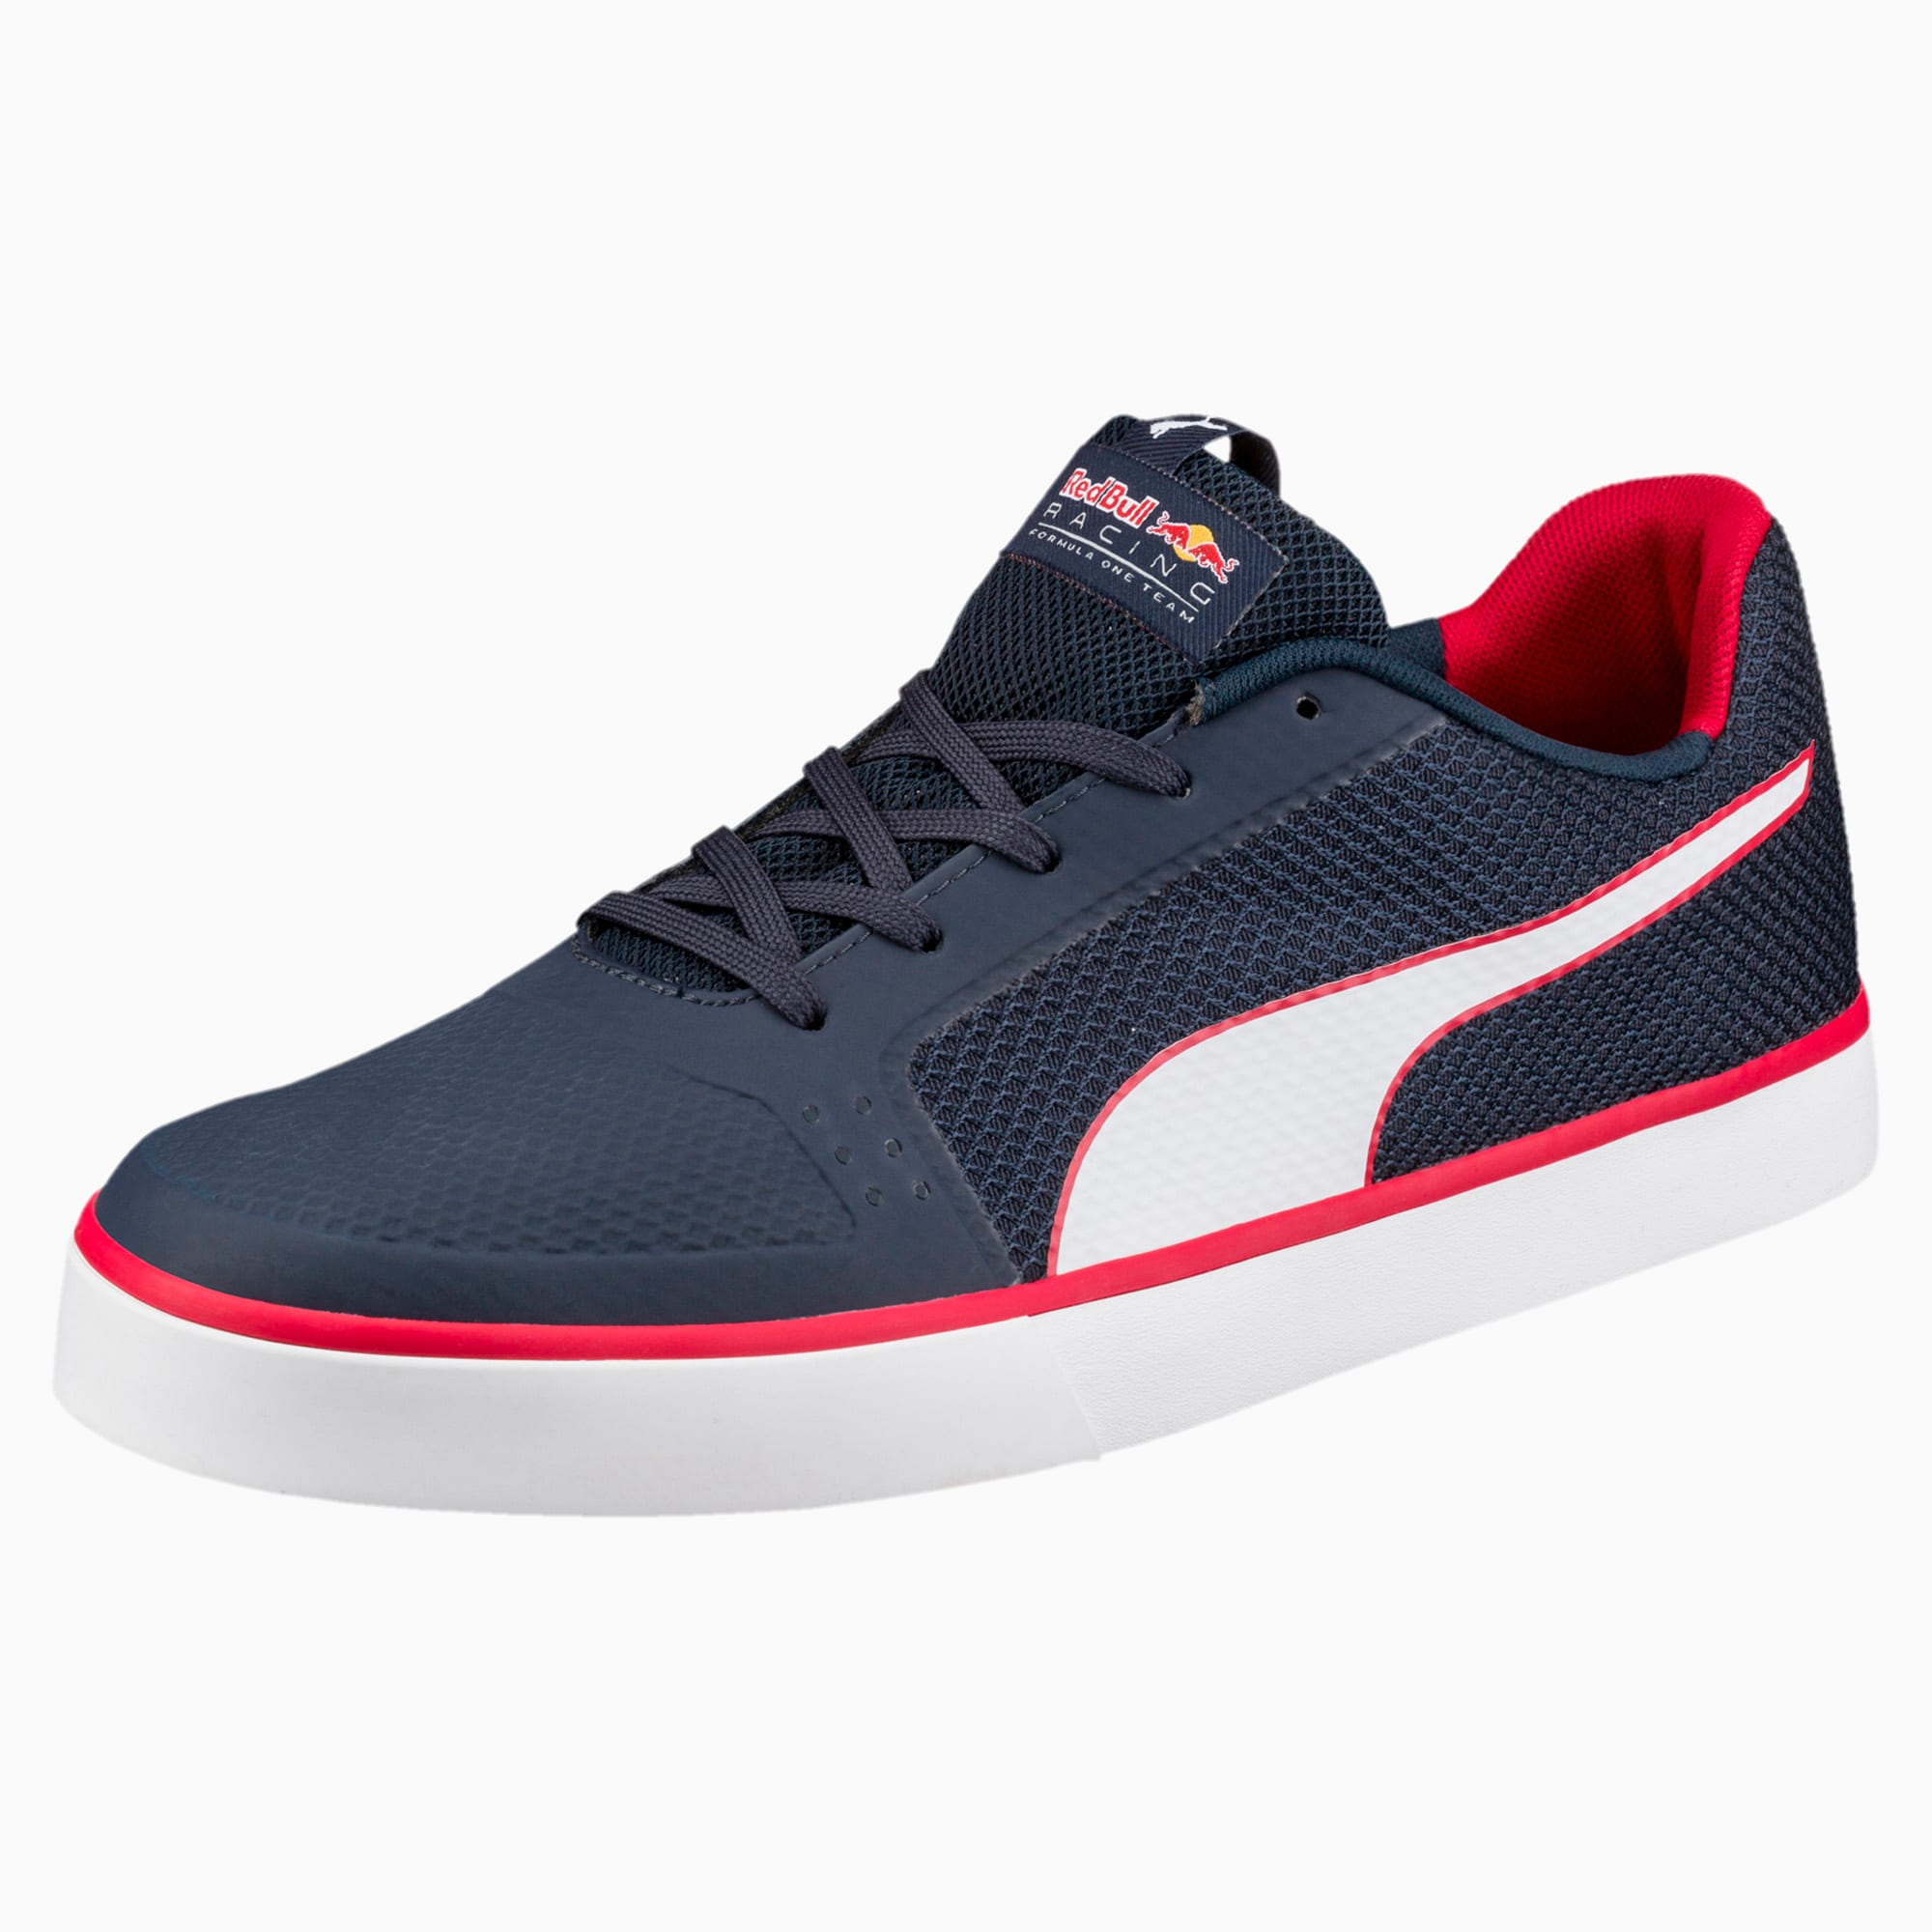 no pueden ver Maletín Mutilar  Red Bull Racing Wings Vulc Trainers   Ttl Eclps-Pm Wht-Chns Rd   PUMA Red  Bull Racing   PUMA Germany